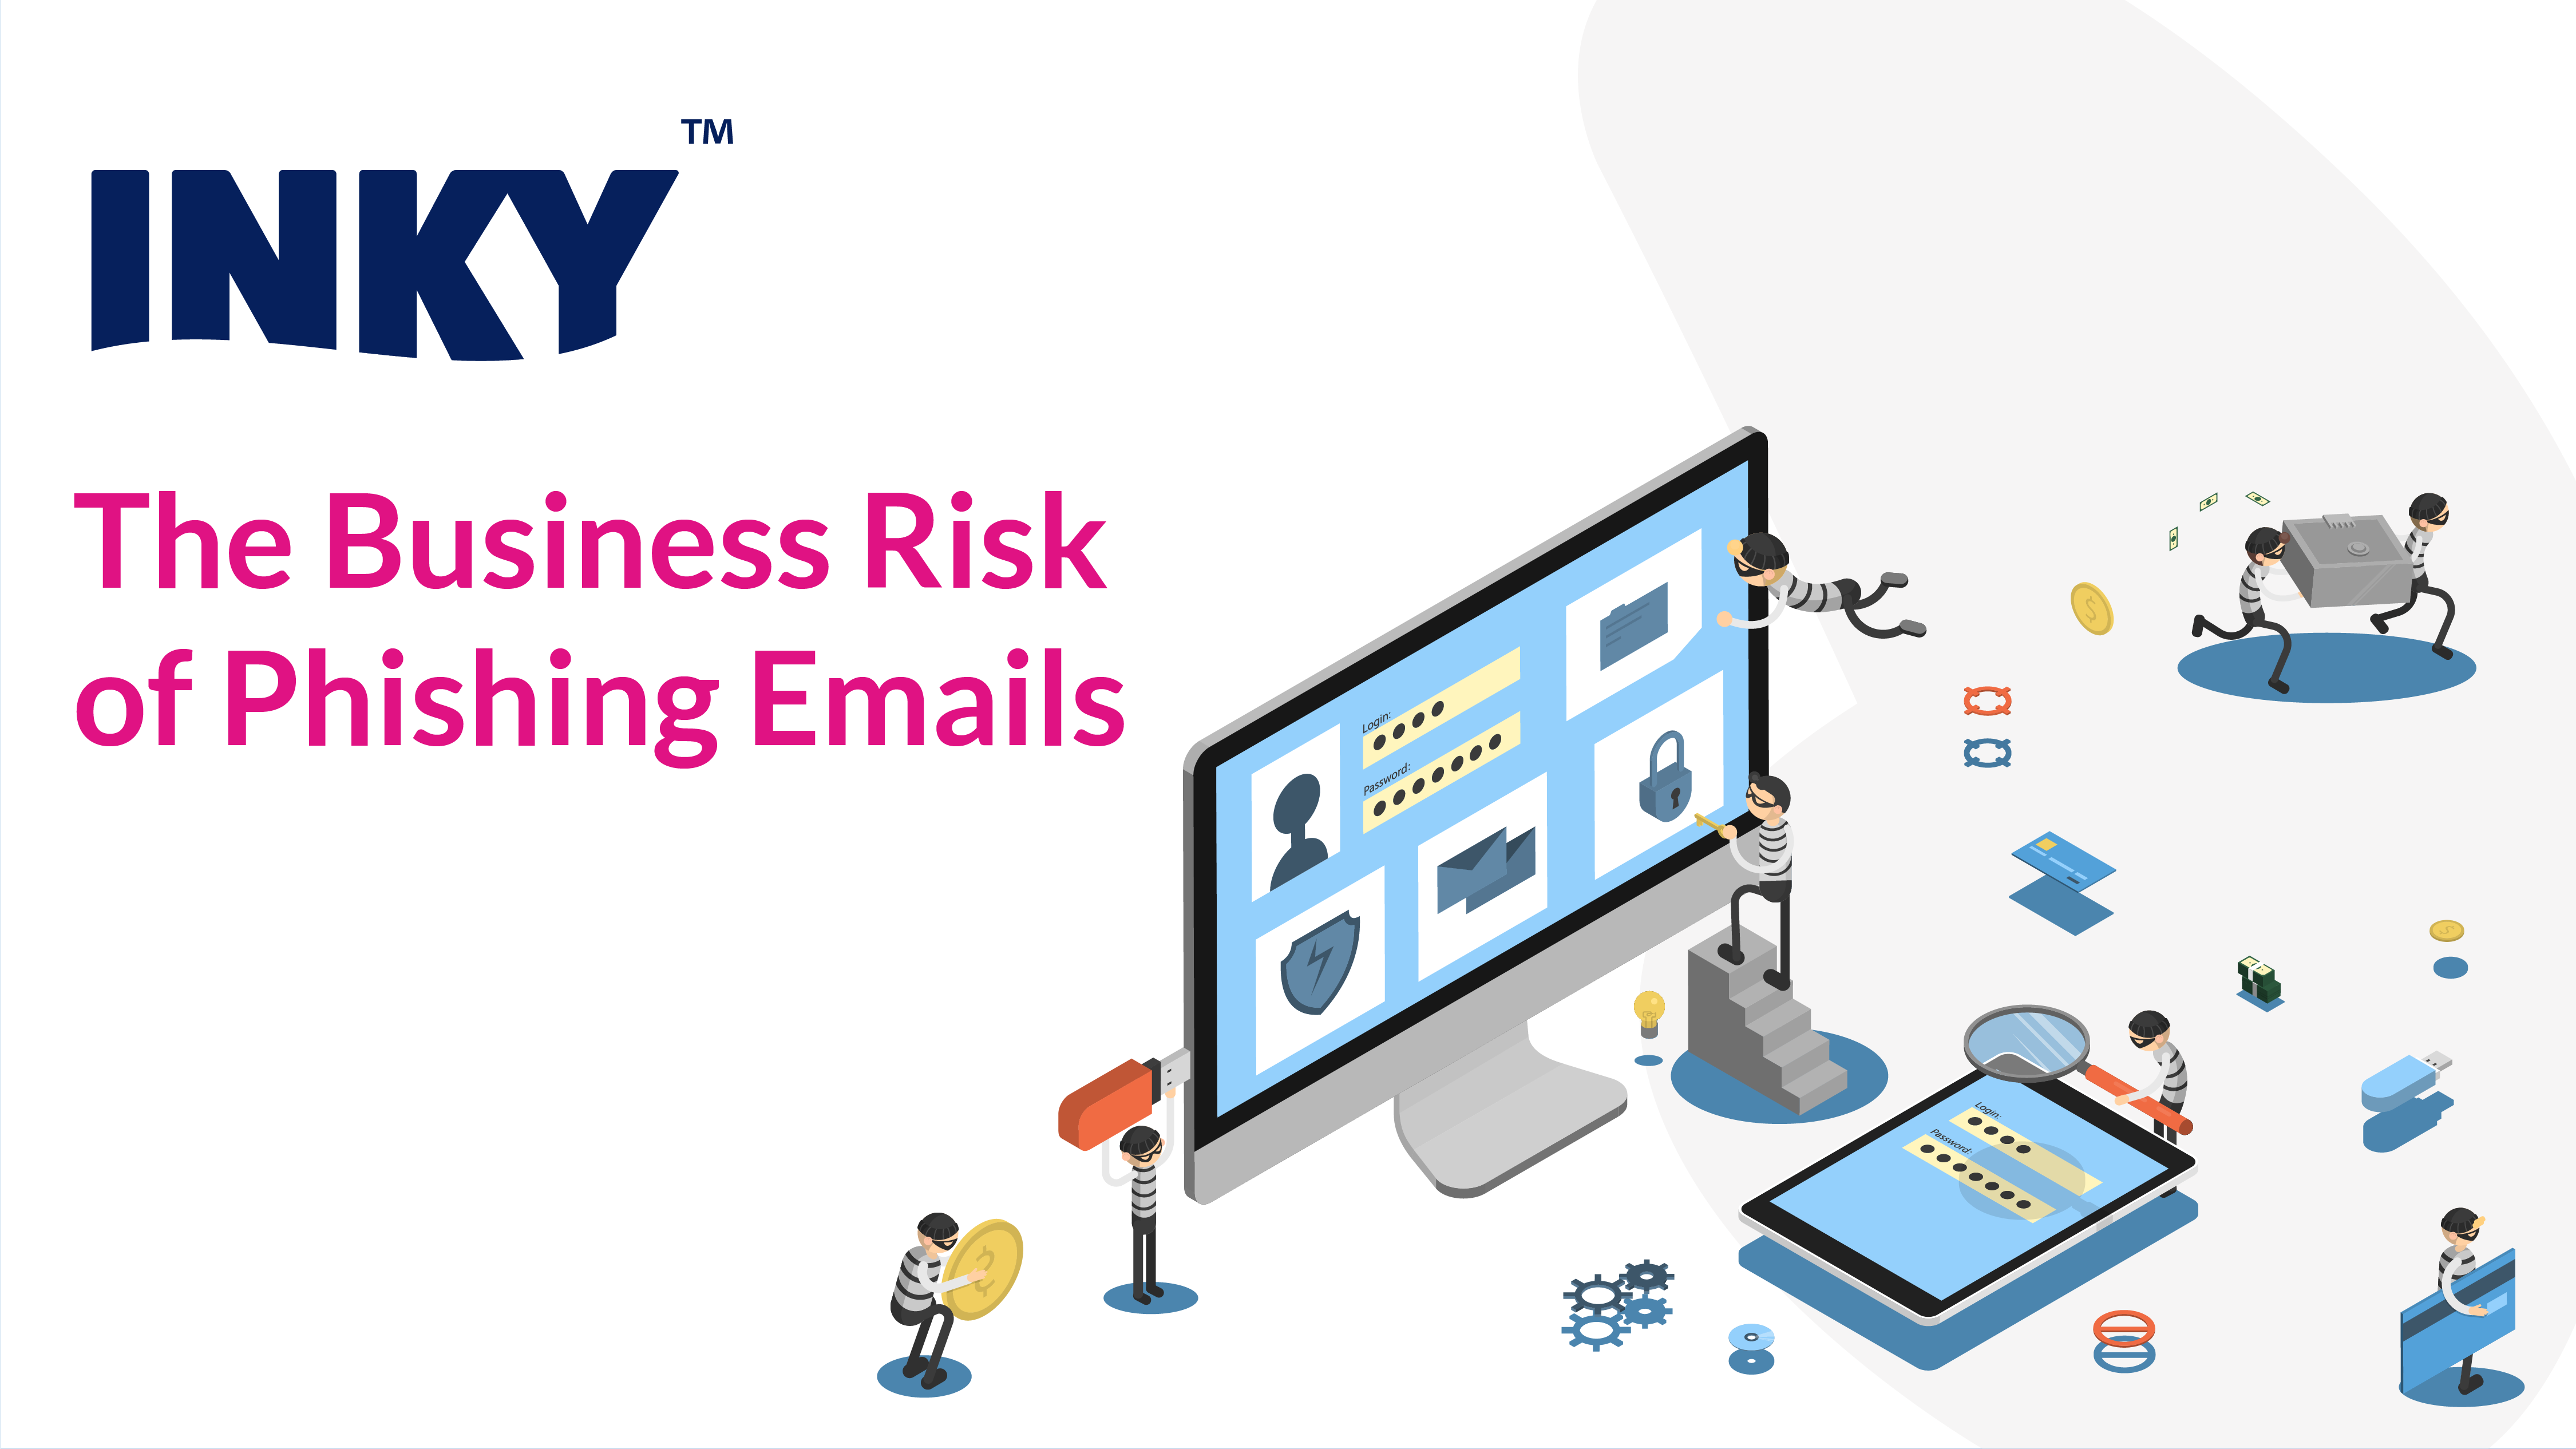 The Business Risk of Phishing Emails